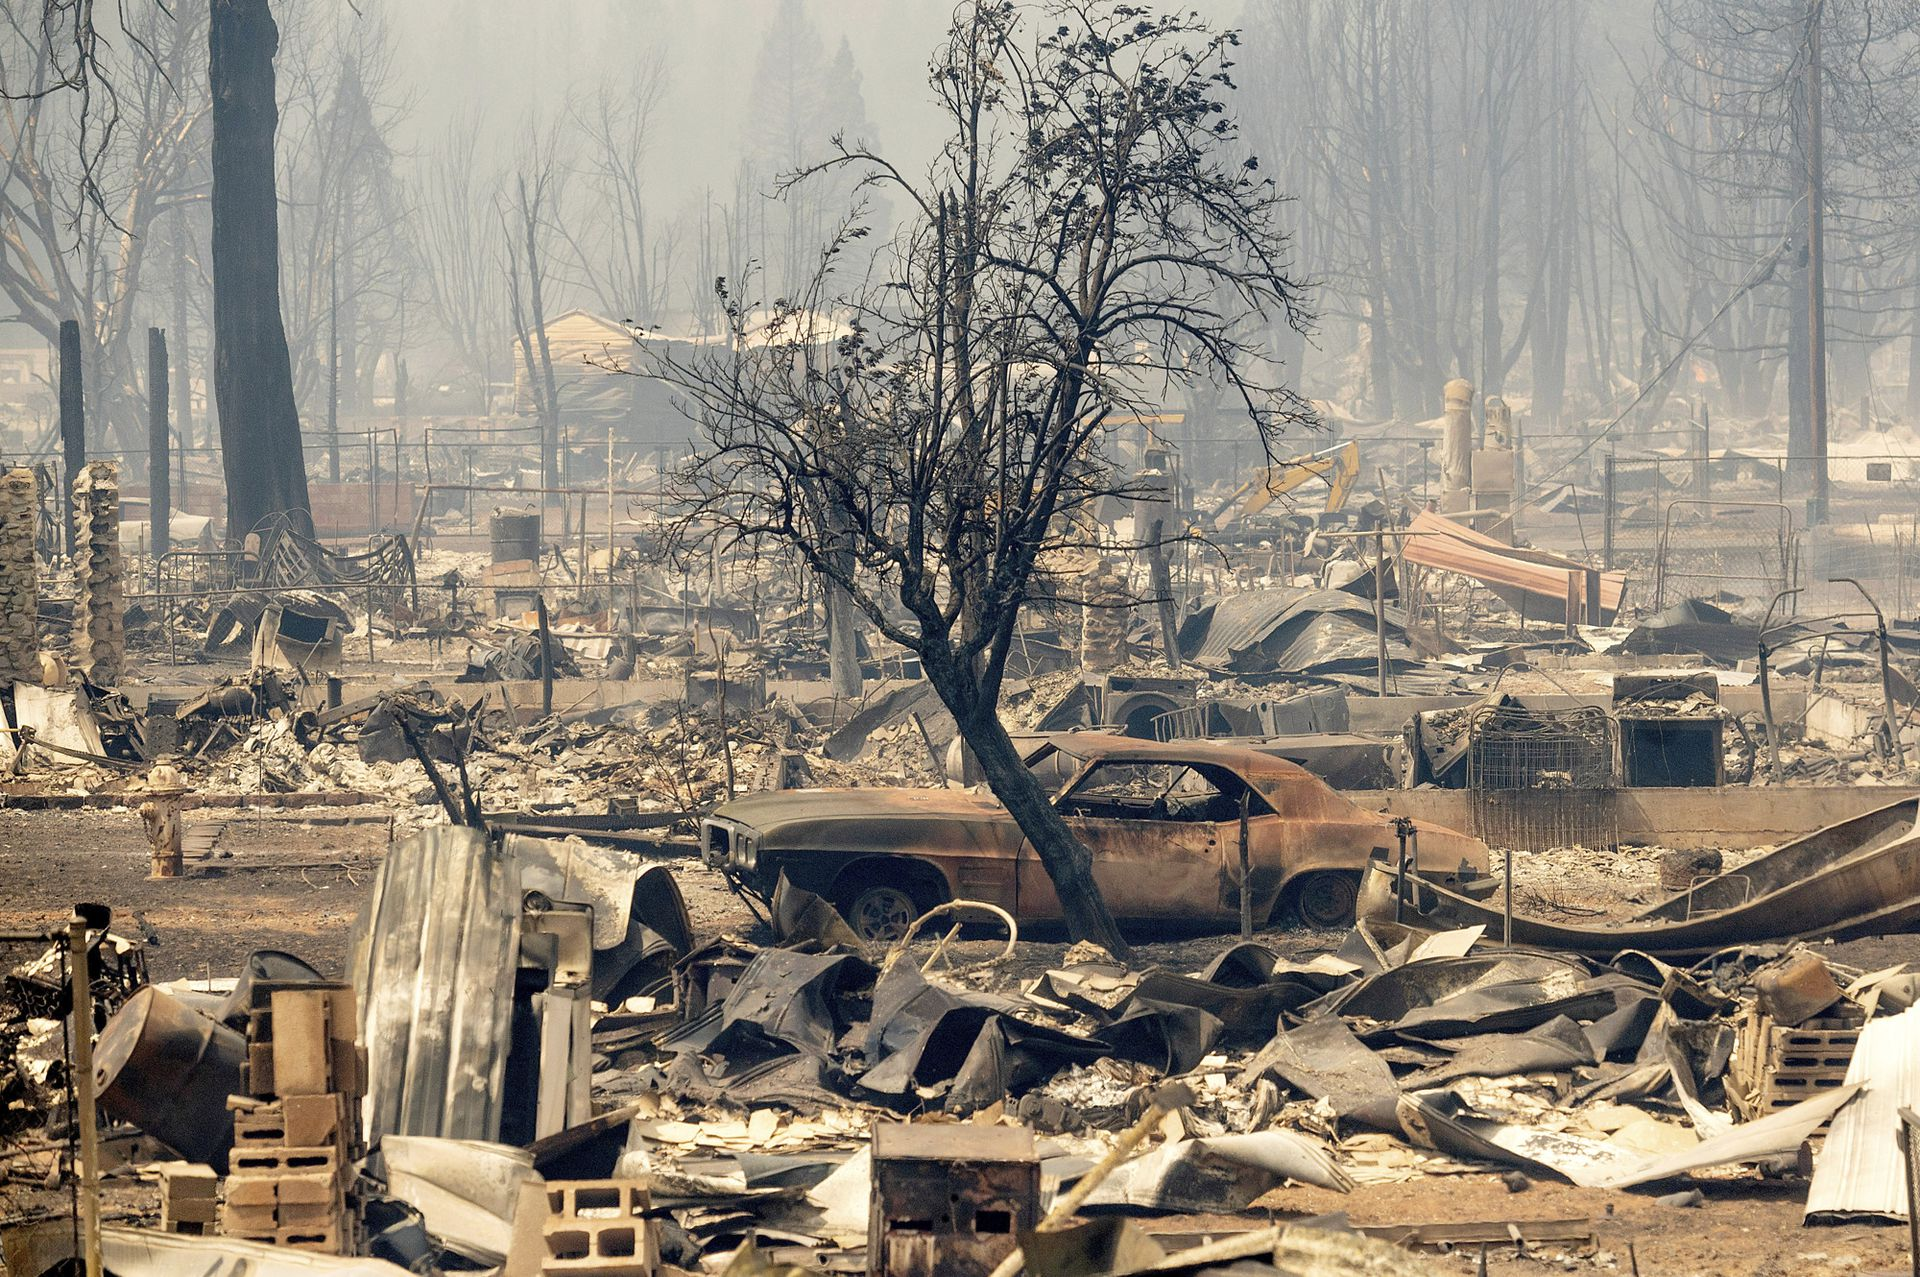 Homes and cars destroyed by fire in downtown Greenville, Plumas County, California